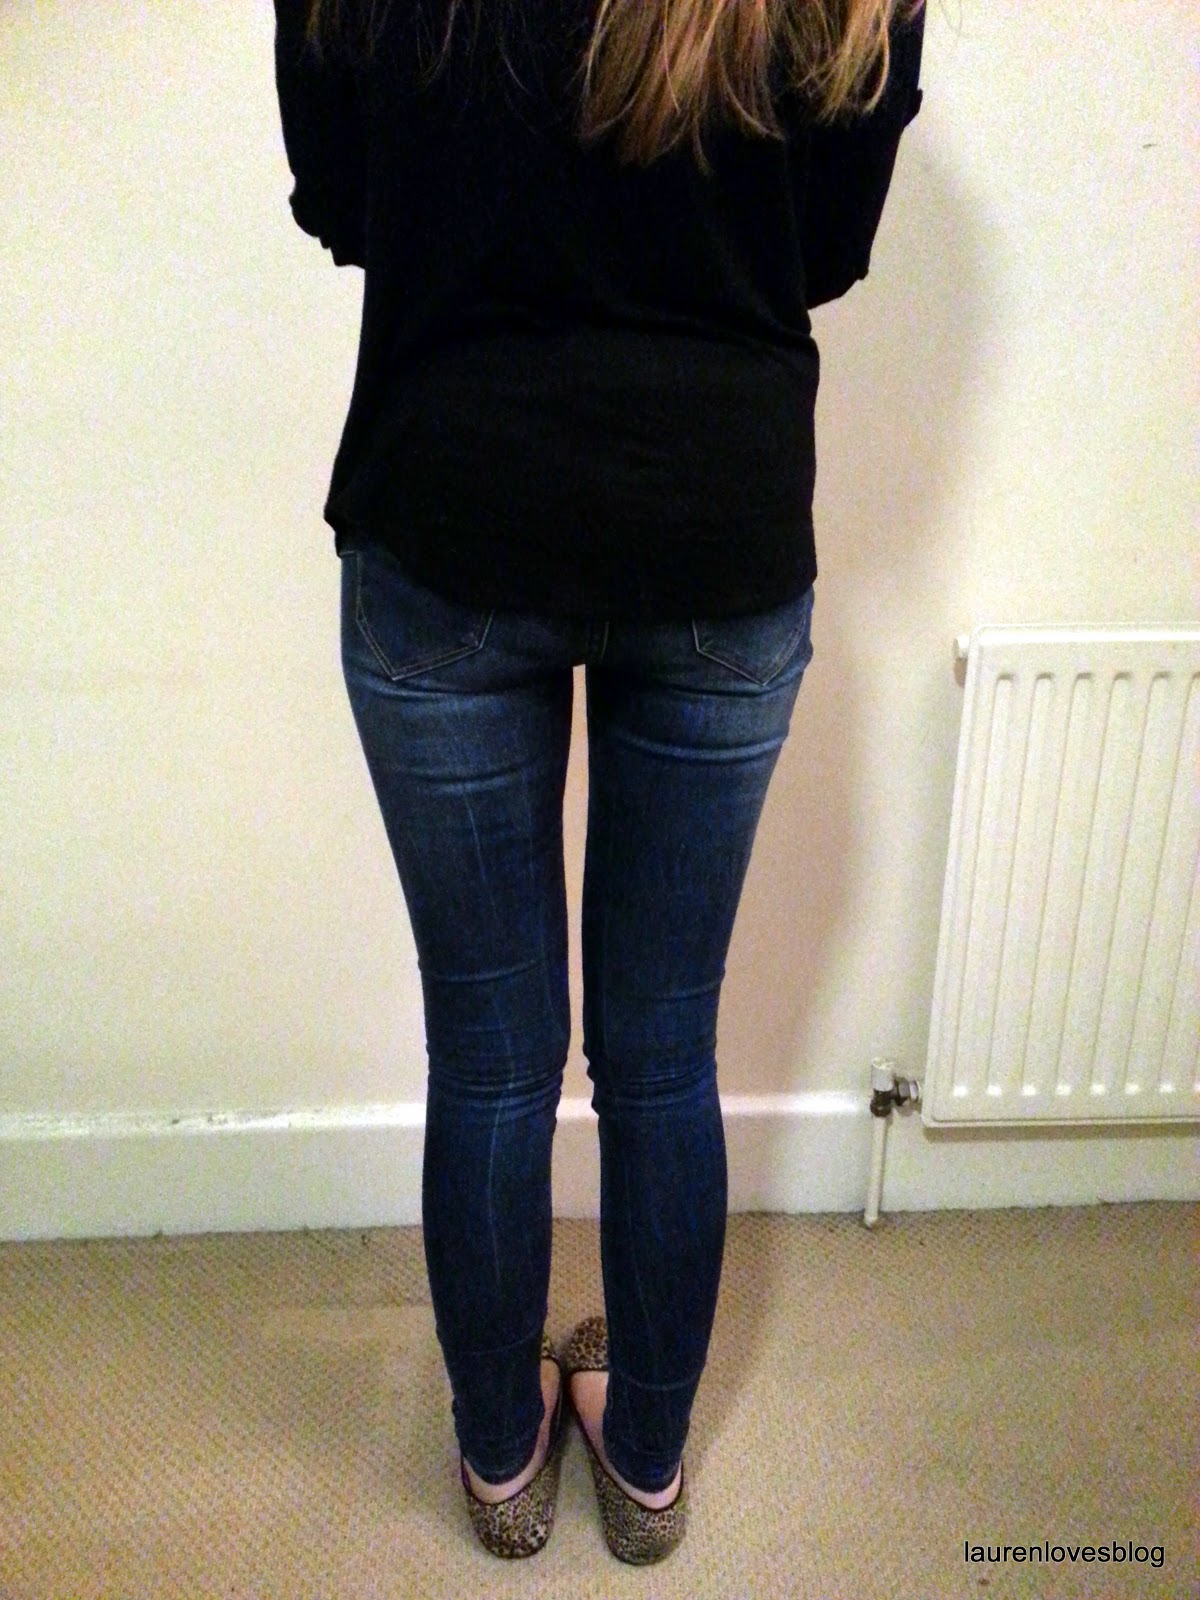 b3d46206e38cb Review  New Look Shaper Jeans OOTD